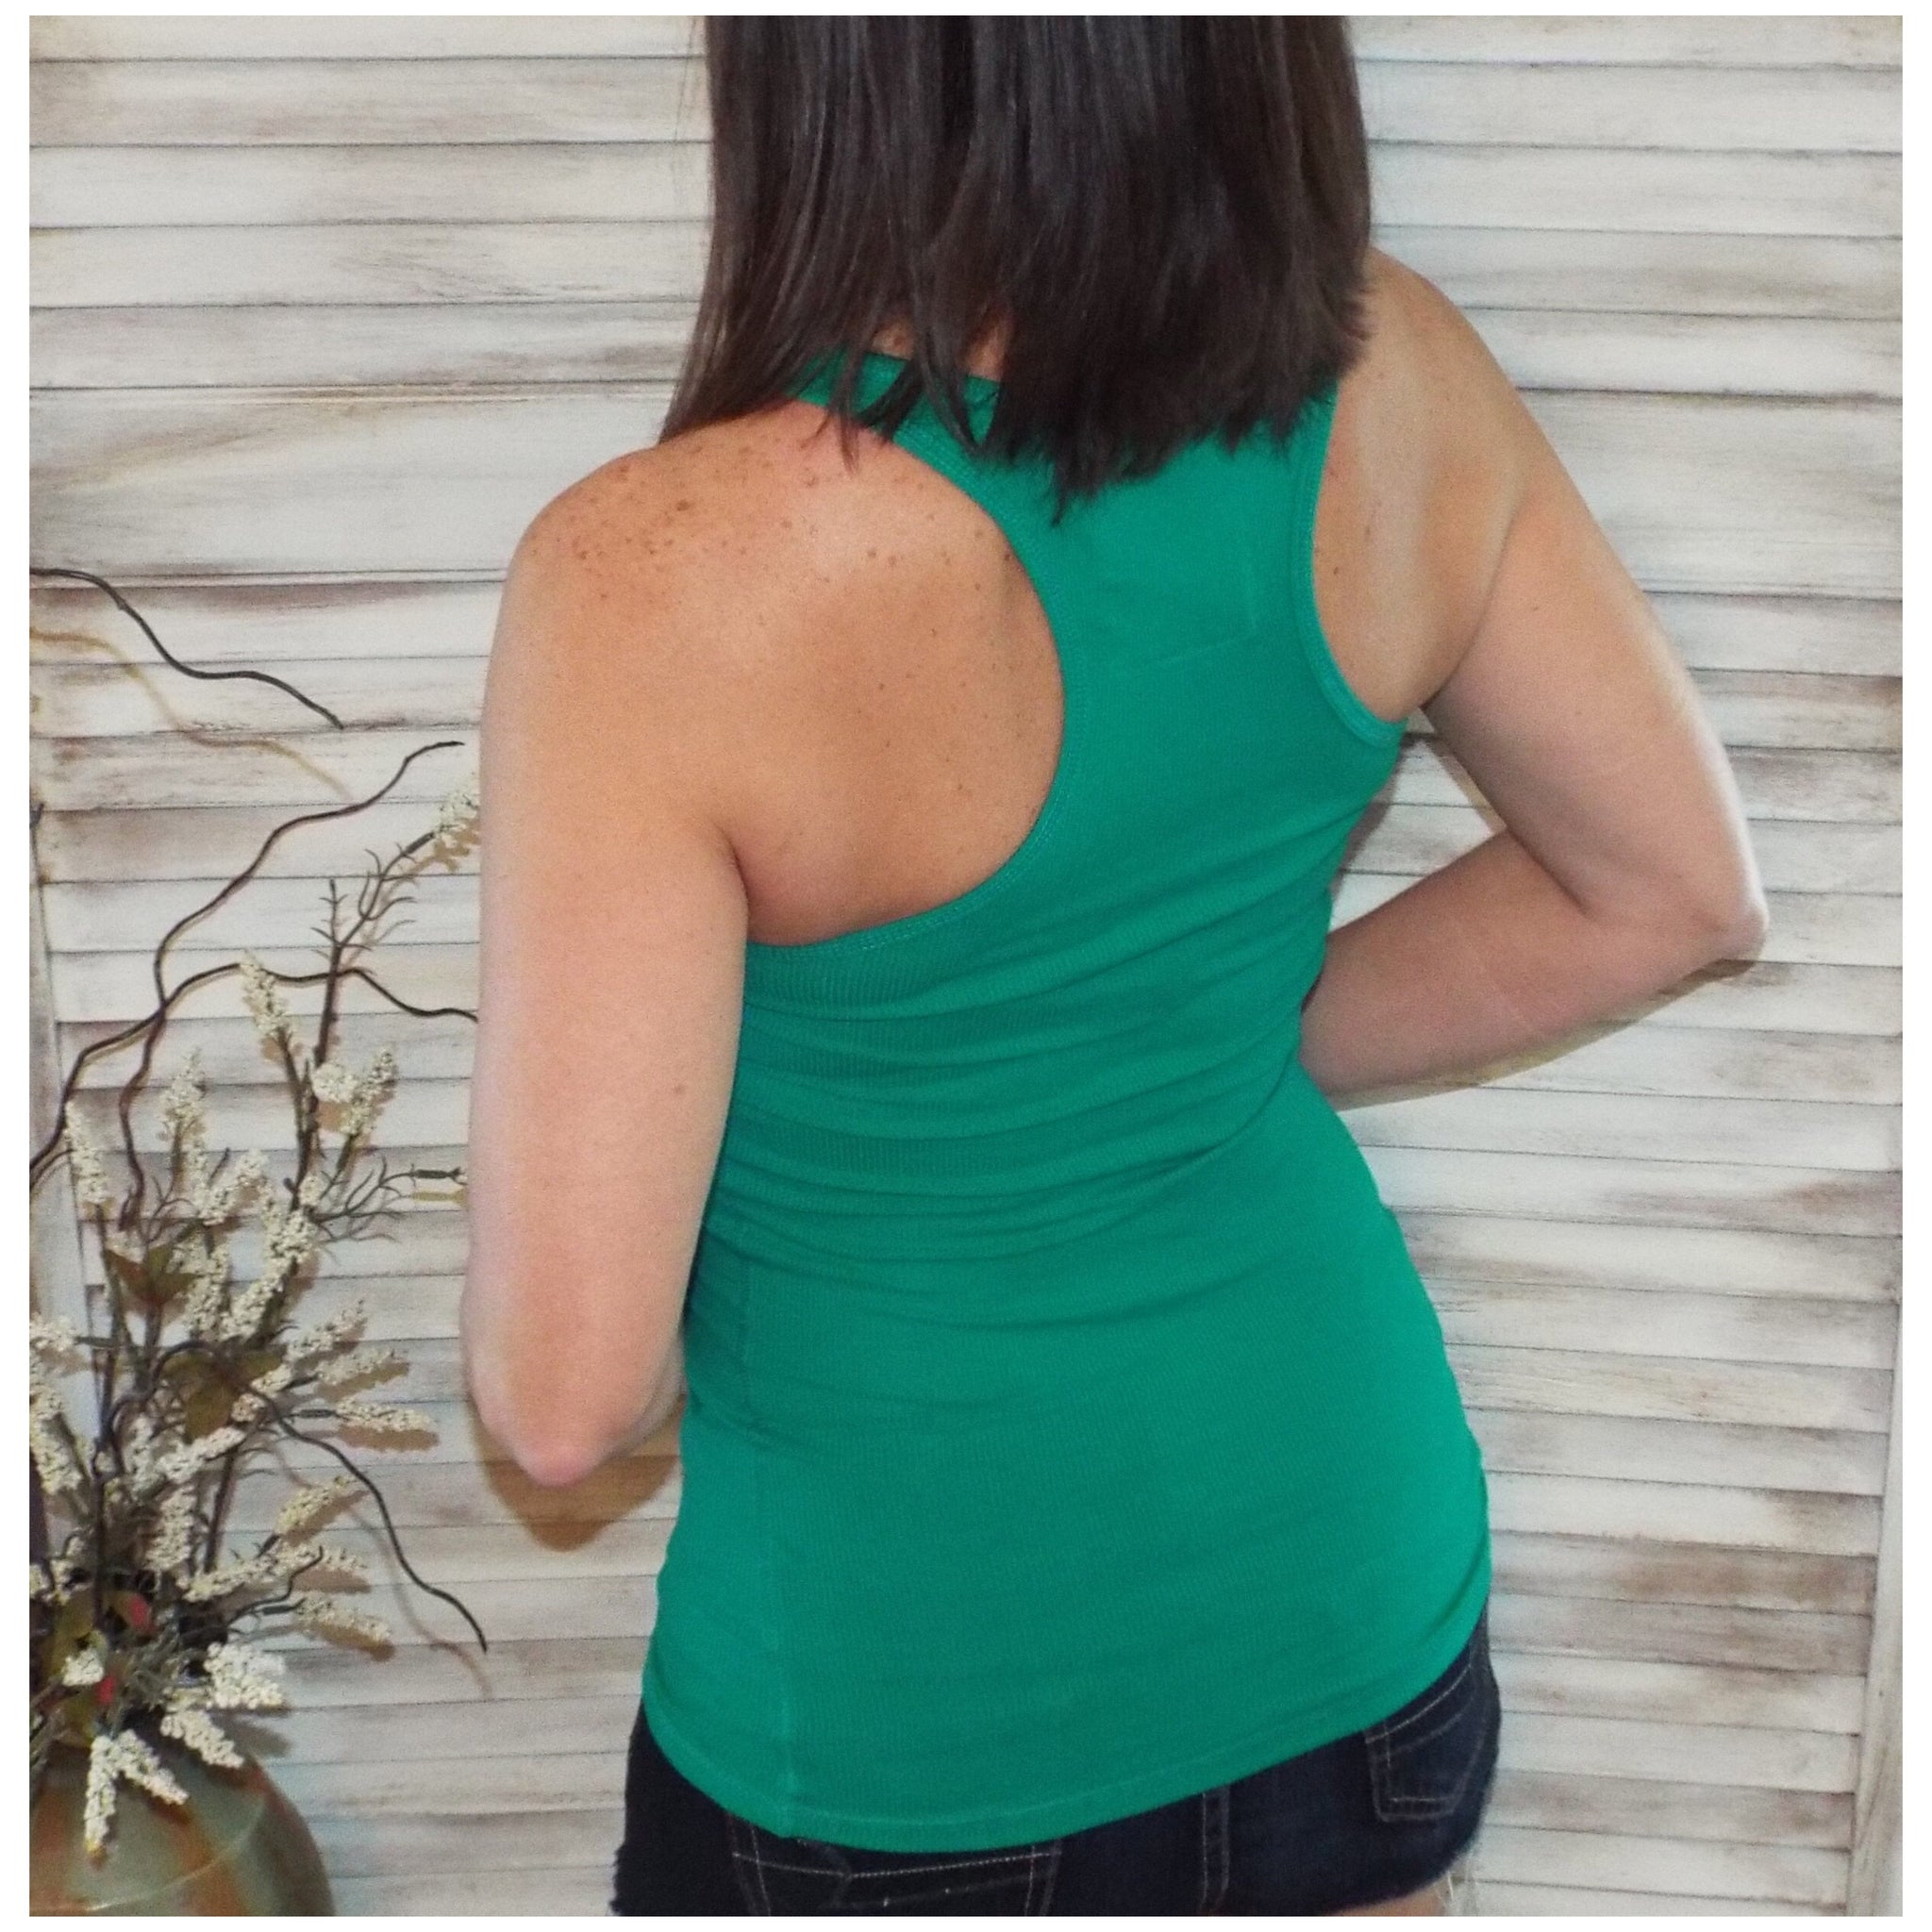 Very Sexy Ribbed Low Cut Scoop Boy Beater Cleavage Fitted Tank Top Green S/M/L